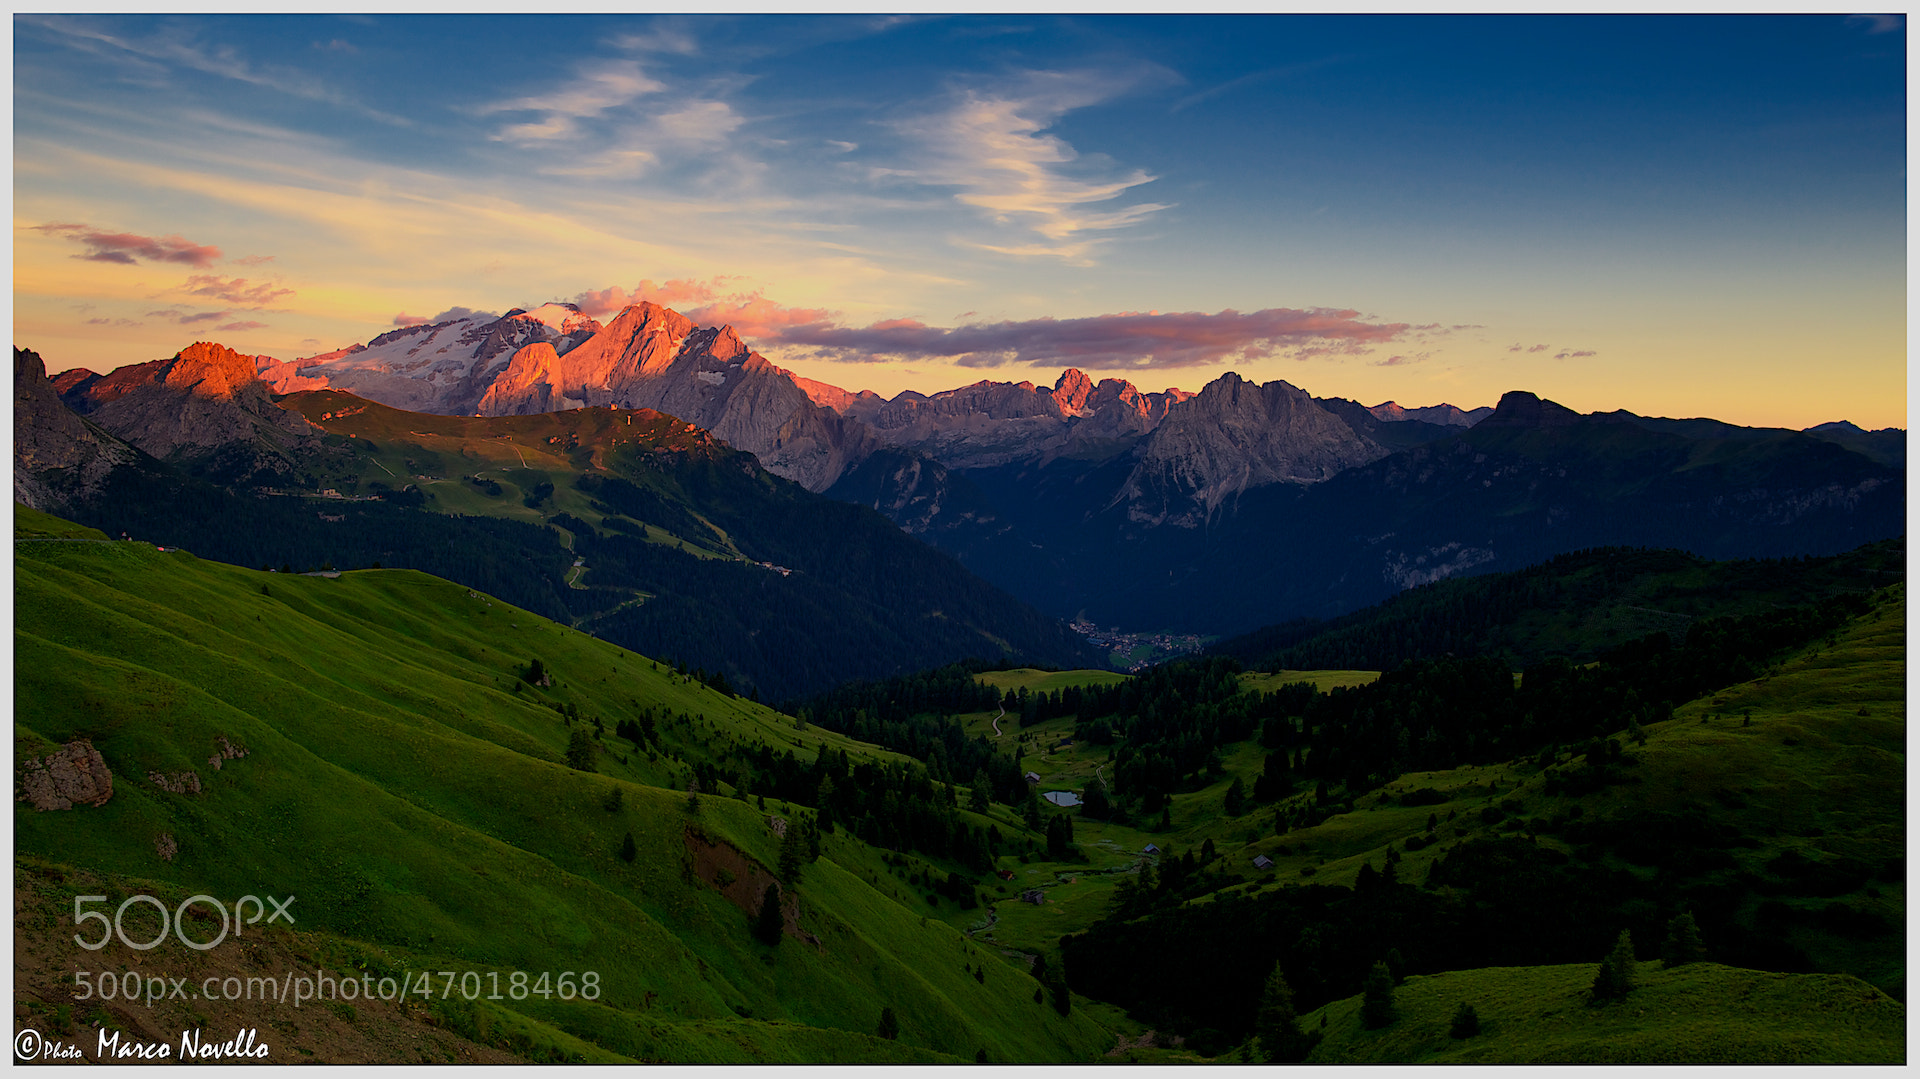 Photograph Marmolada at sunset by Marco Novello on 500px